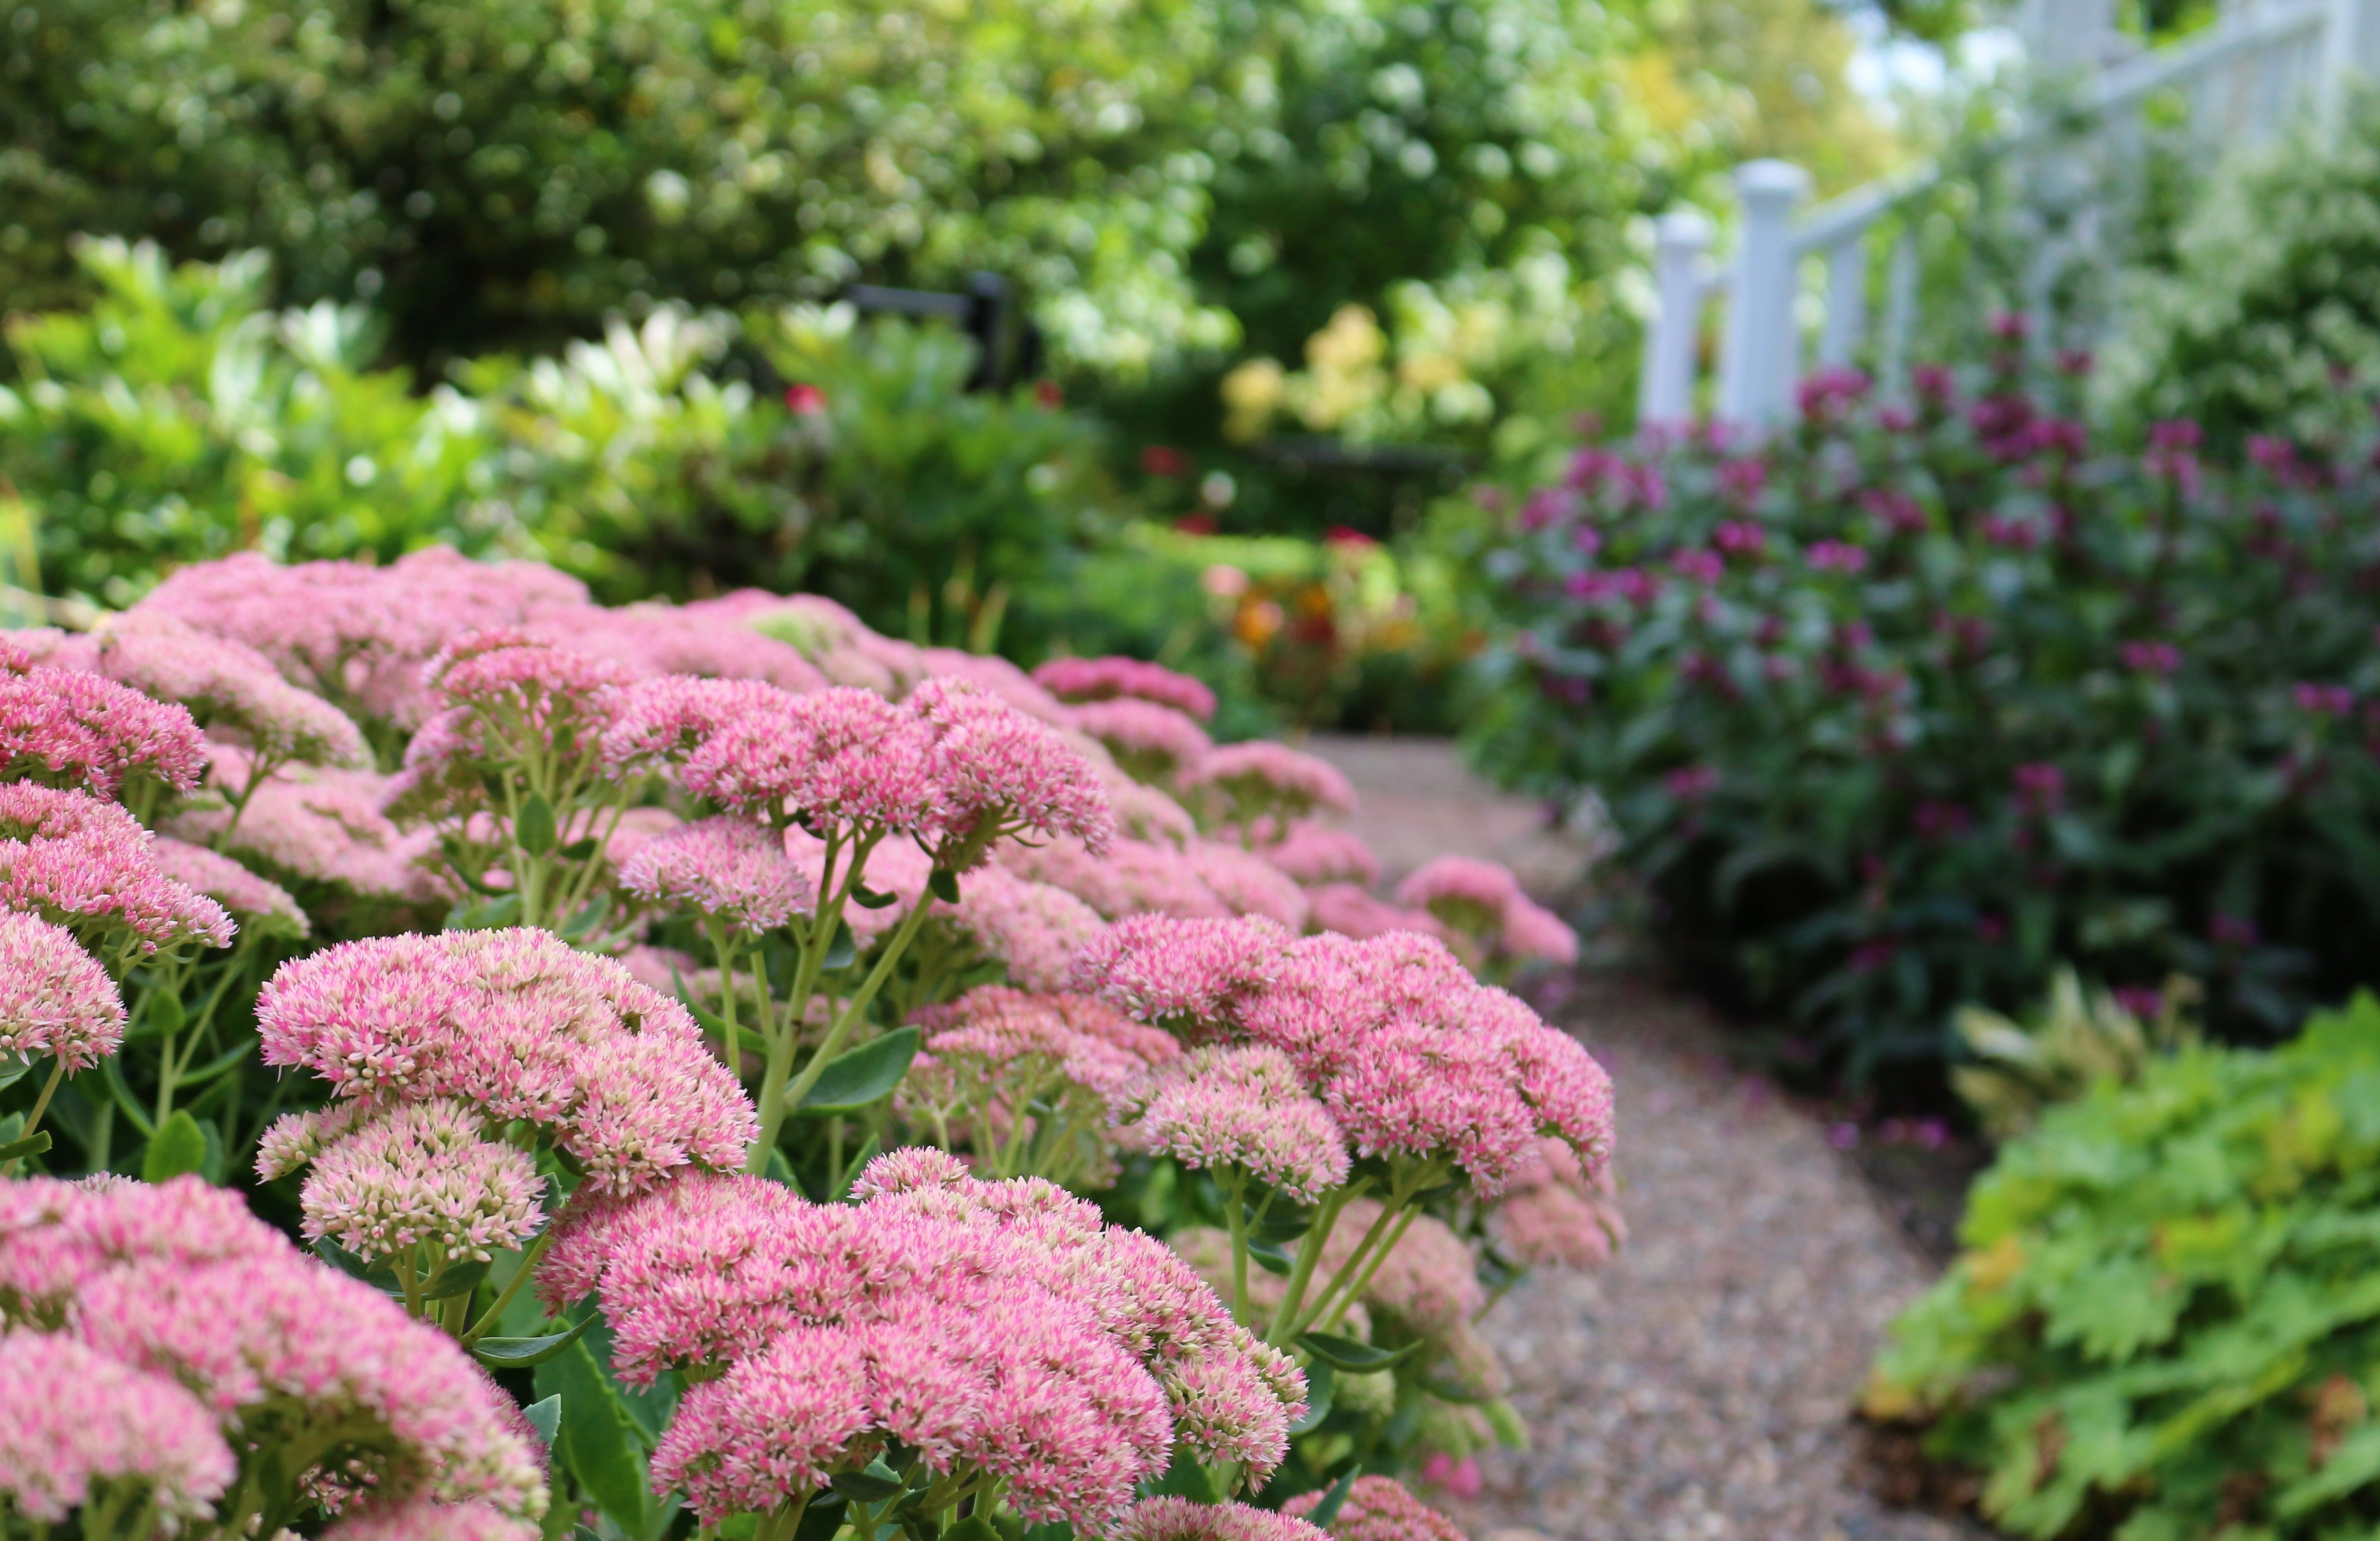 Fall Blooming Perennials Provide Seasonal Color And Texture As They